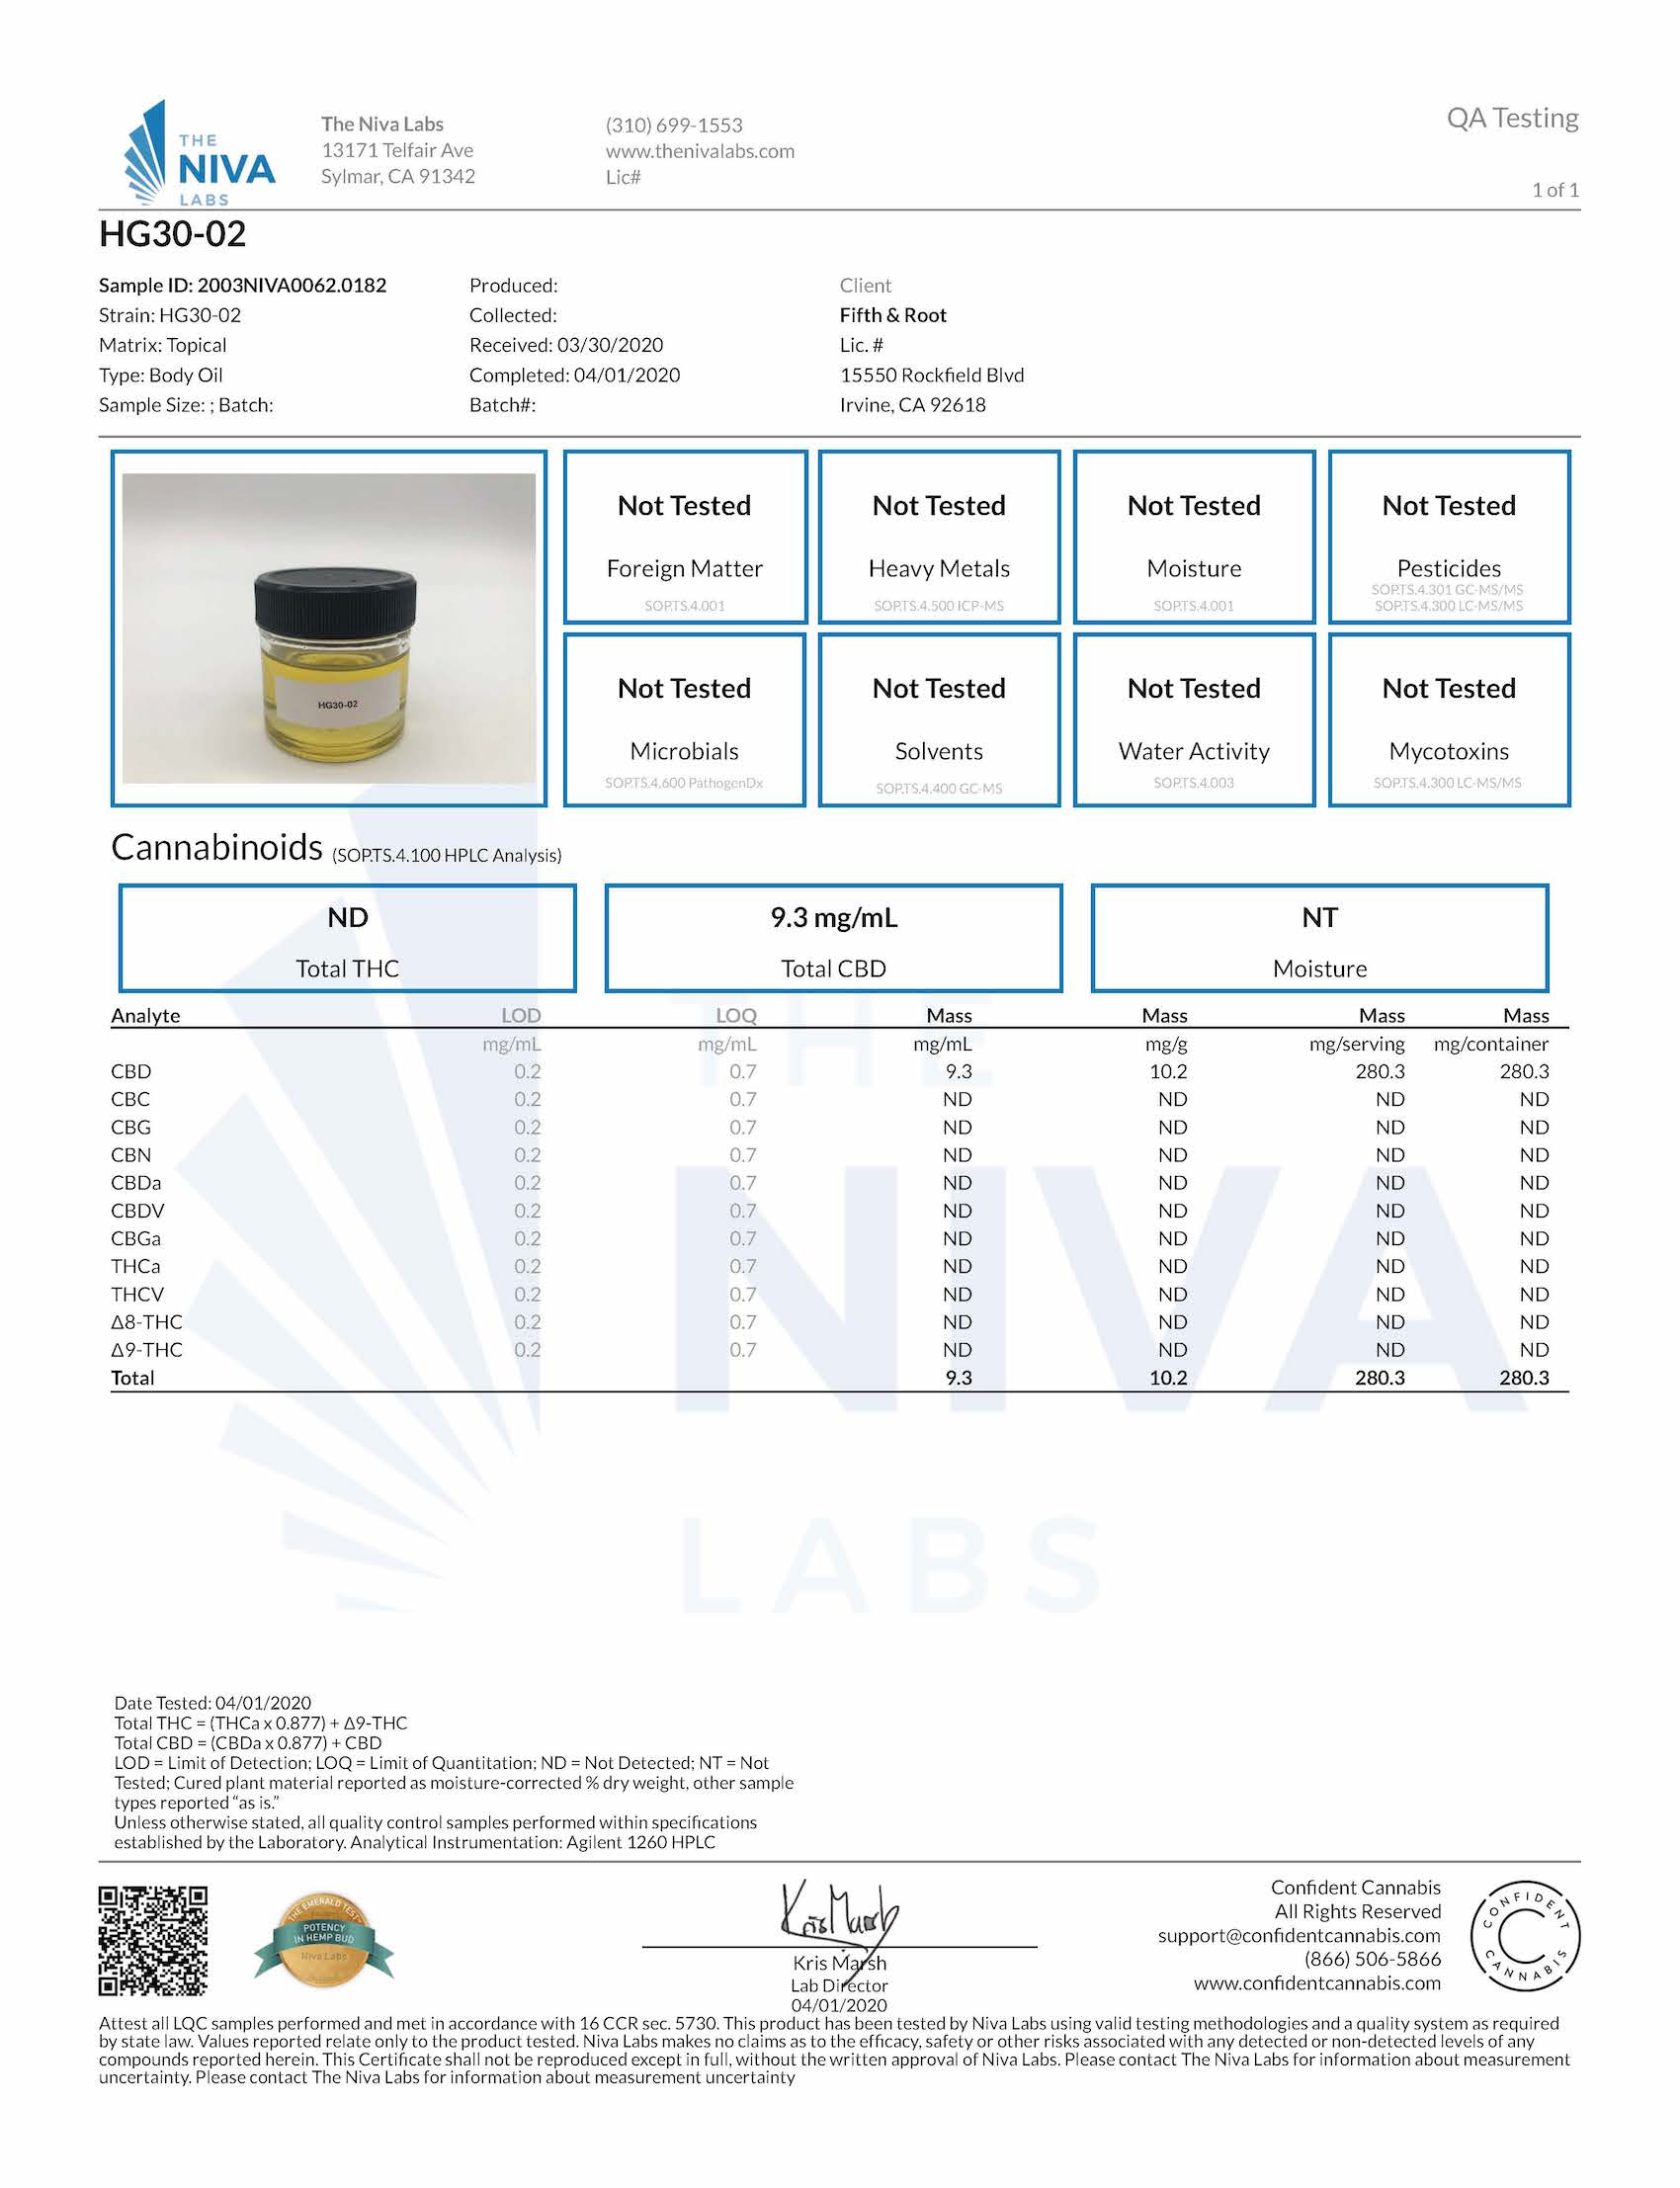 High Glow Radiance Facial Oil Certificate of Analysis